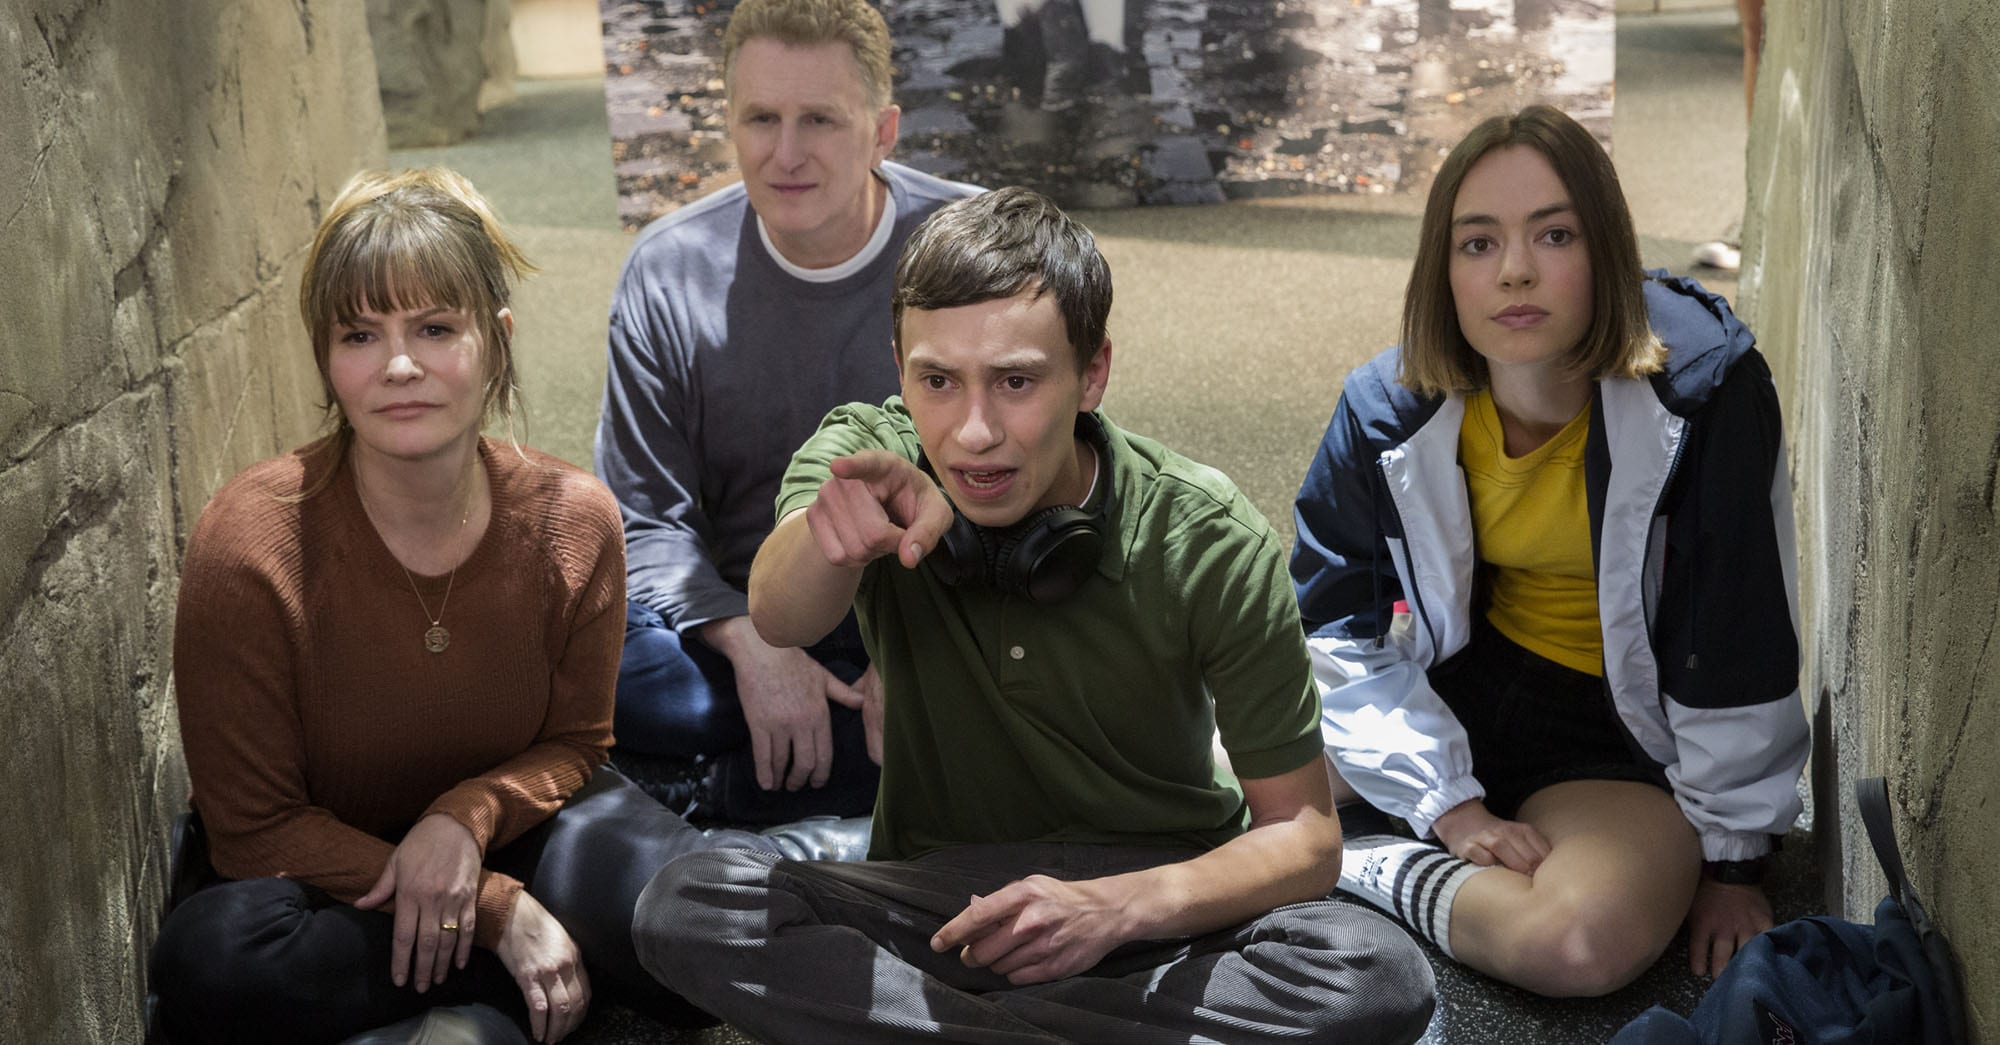 'Atypical' is a coming of age story that follows Sam, an 18-year-old on the autistic spectrum as he searches for love and independence.